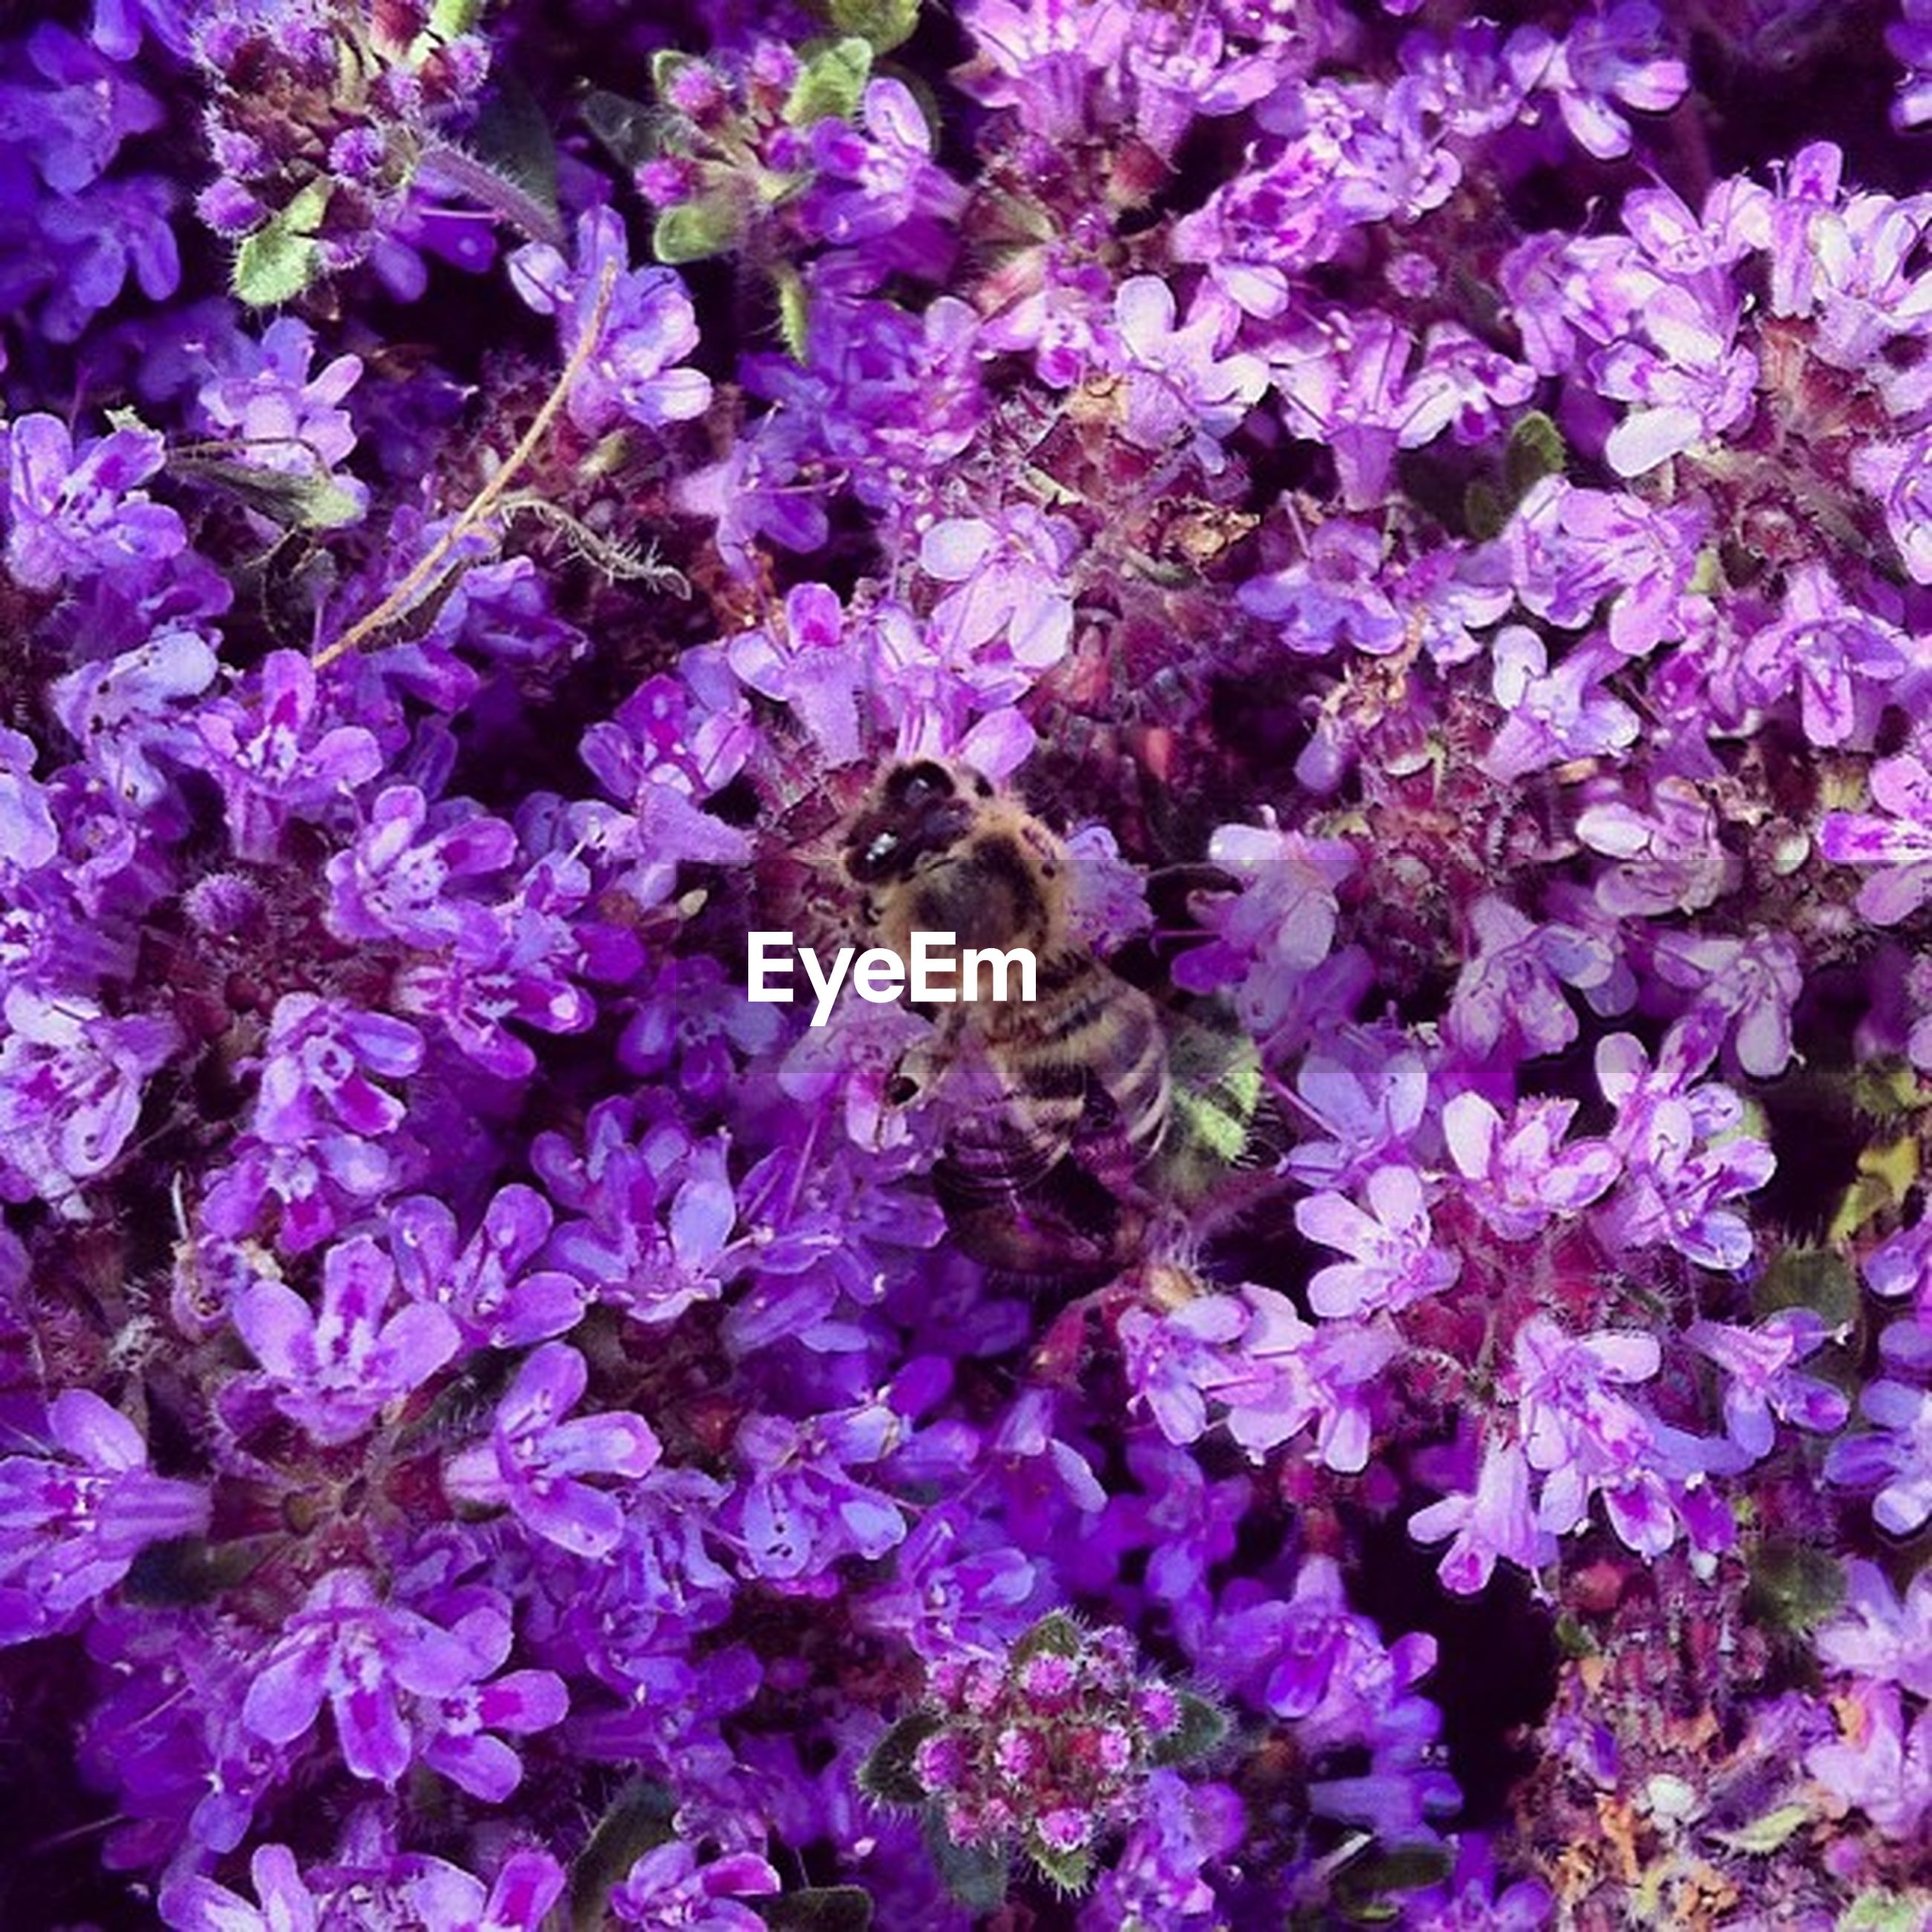 flower, insect, animal themes, one animal, animals in the wild, wildlife, petal, freshness, fragility, bee, pollination, beauty in nature, growth, purple, nature, flower head, high angle view, plant, blooming, symbiotic relationship